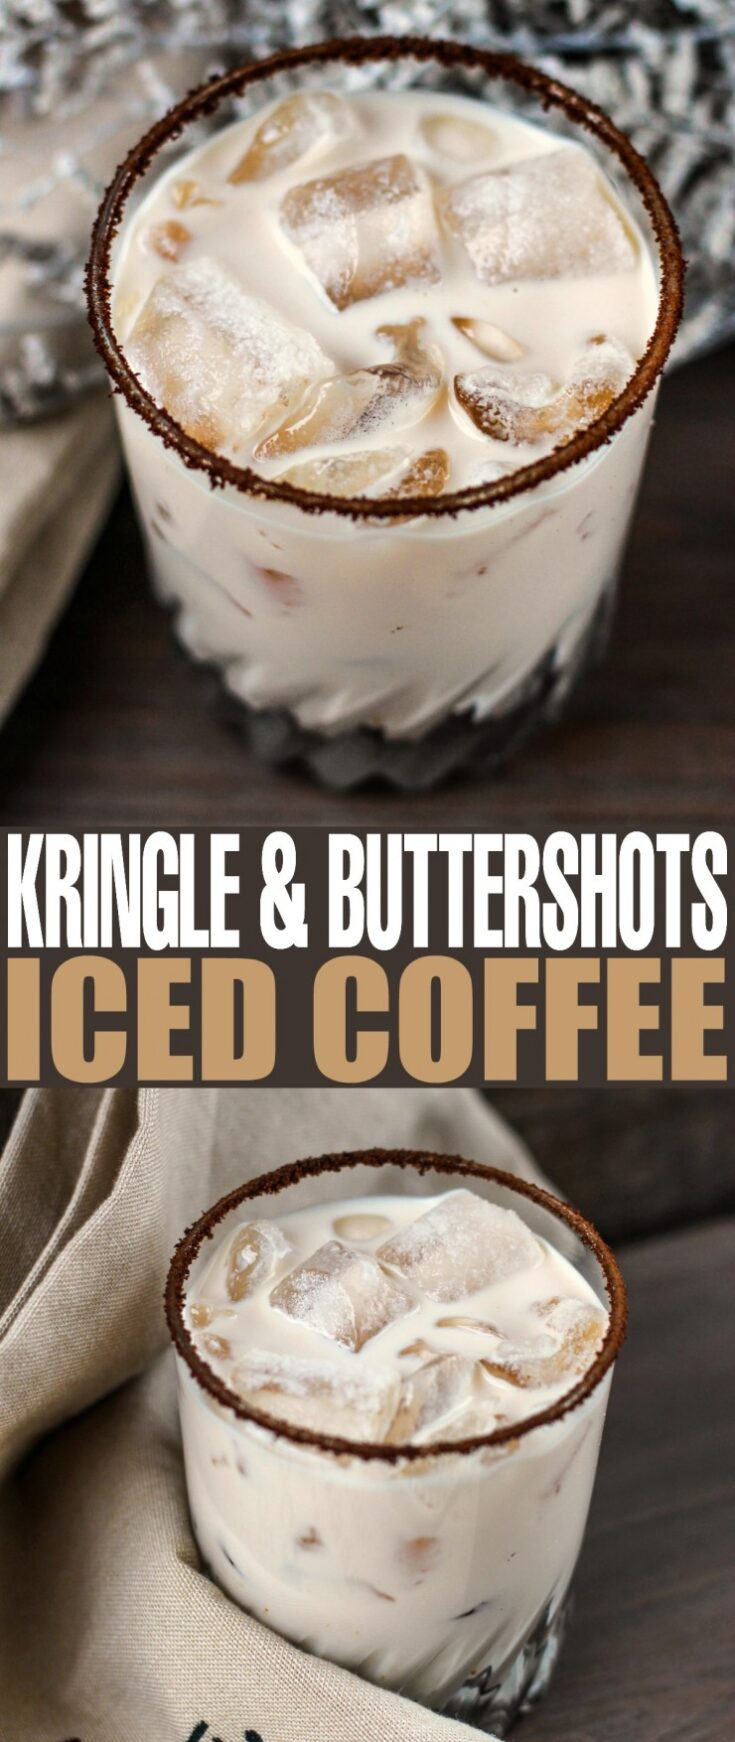 Kringle and Buttershots Iced Coffee